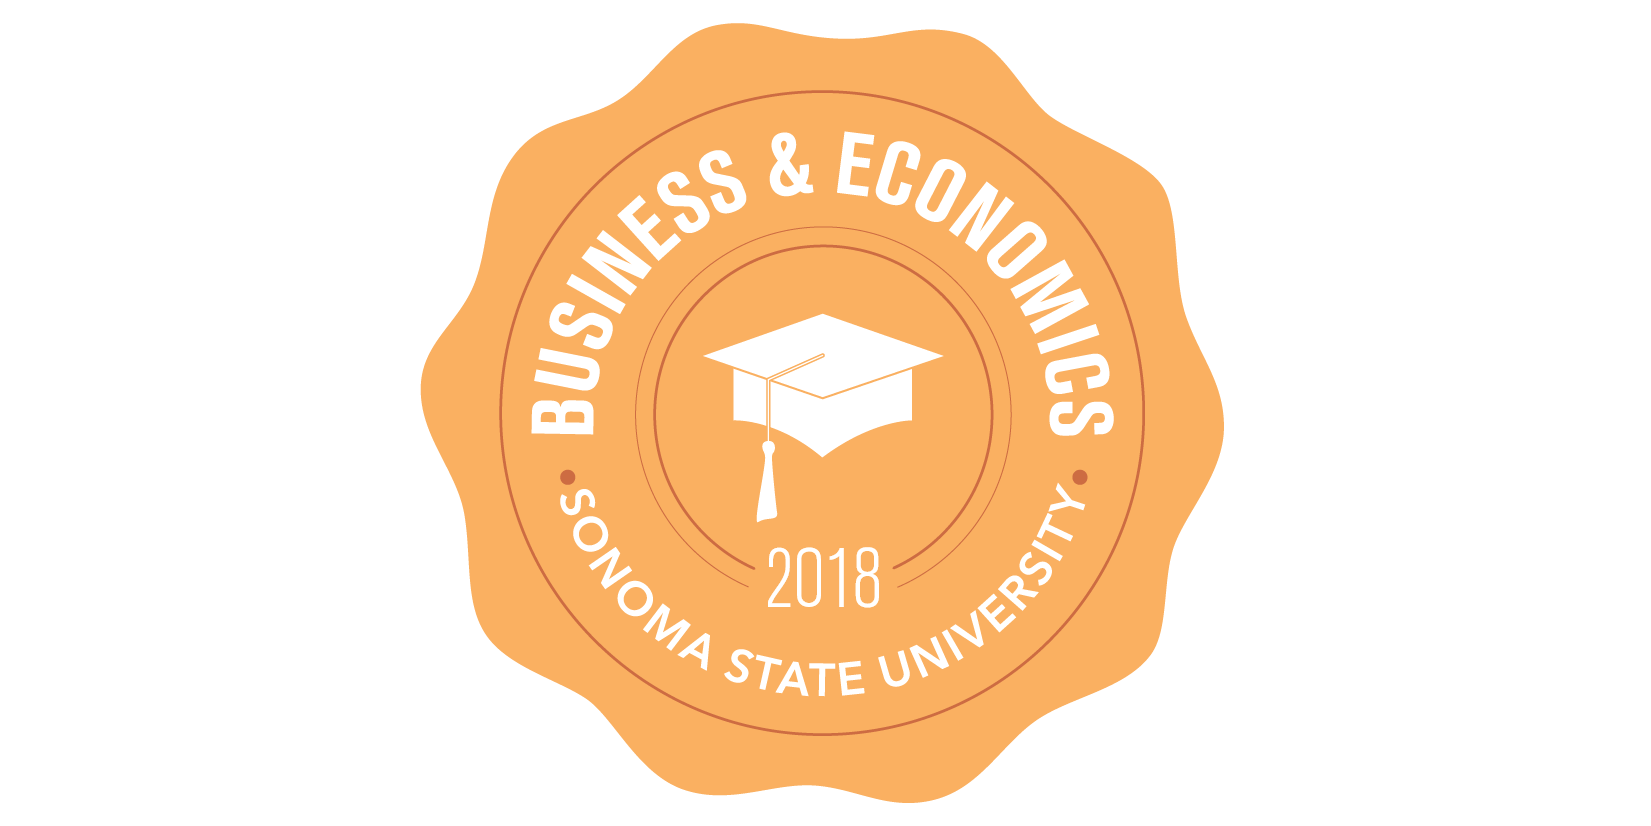 School of Business and Economics 2018 Commencement badge